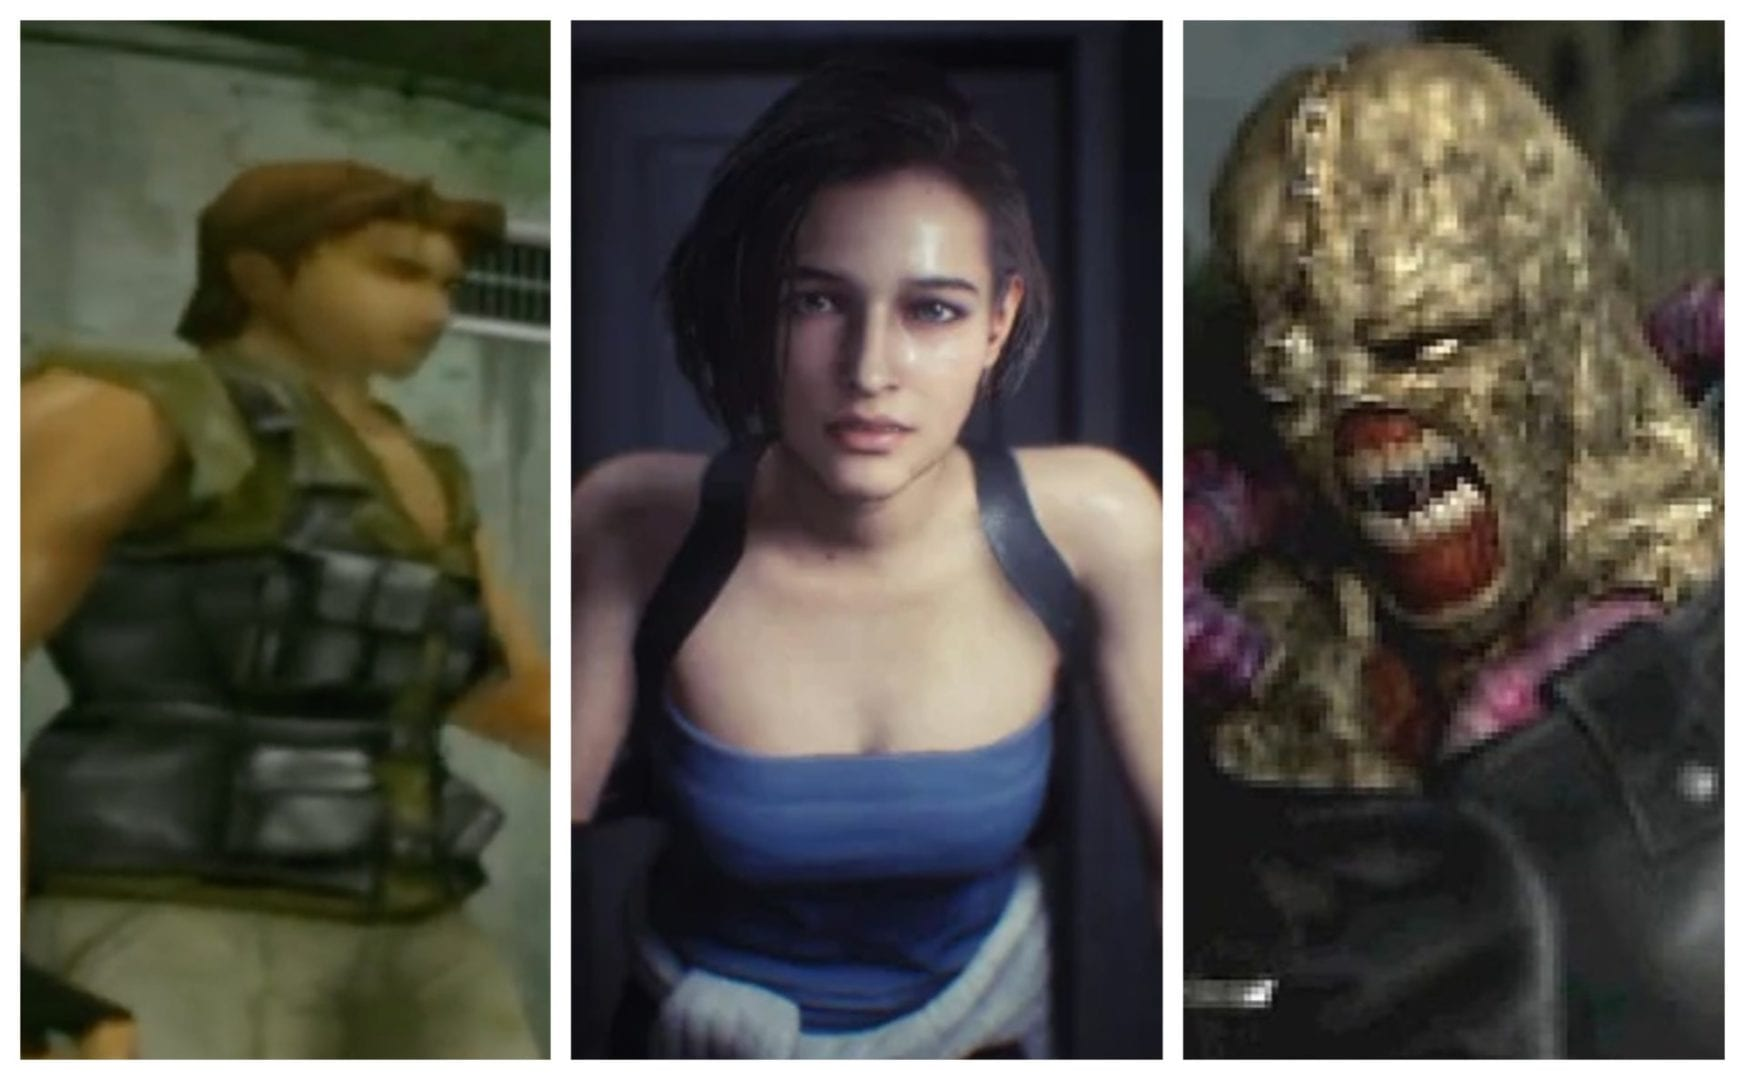 Resident Evil 3 Remake Screenshots Compared To The Original Shows